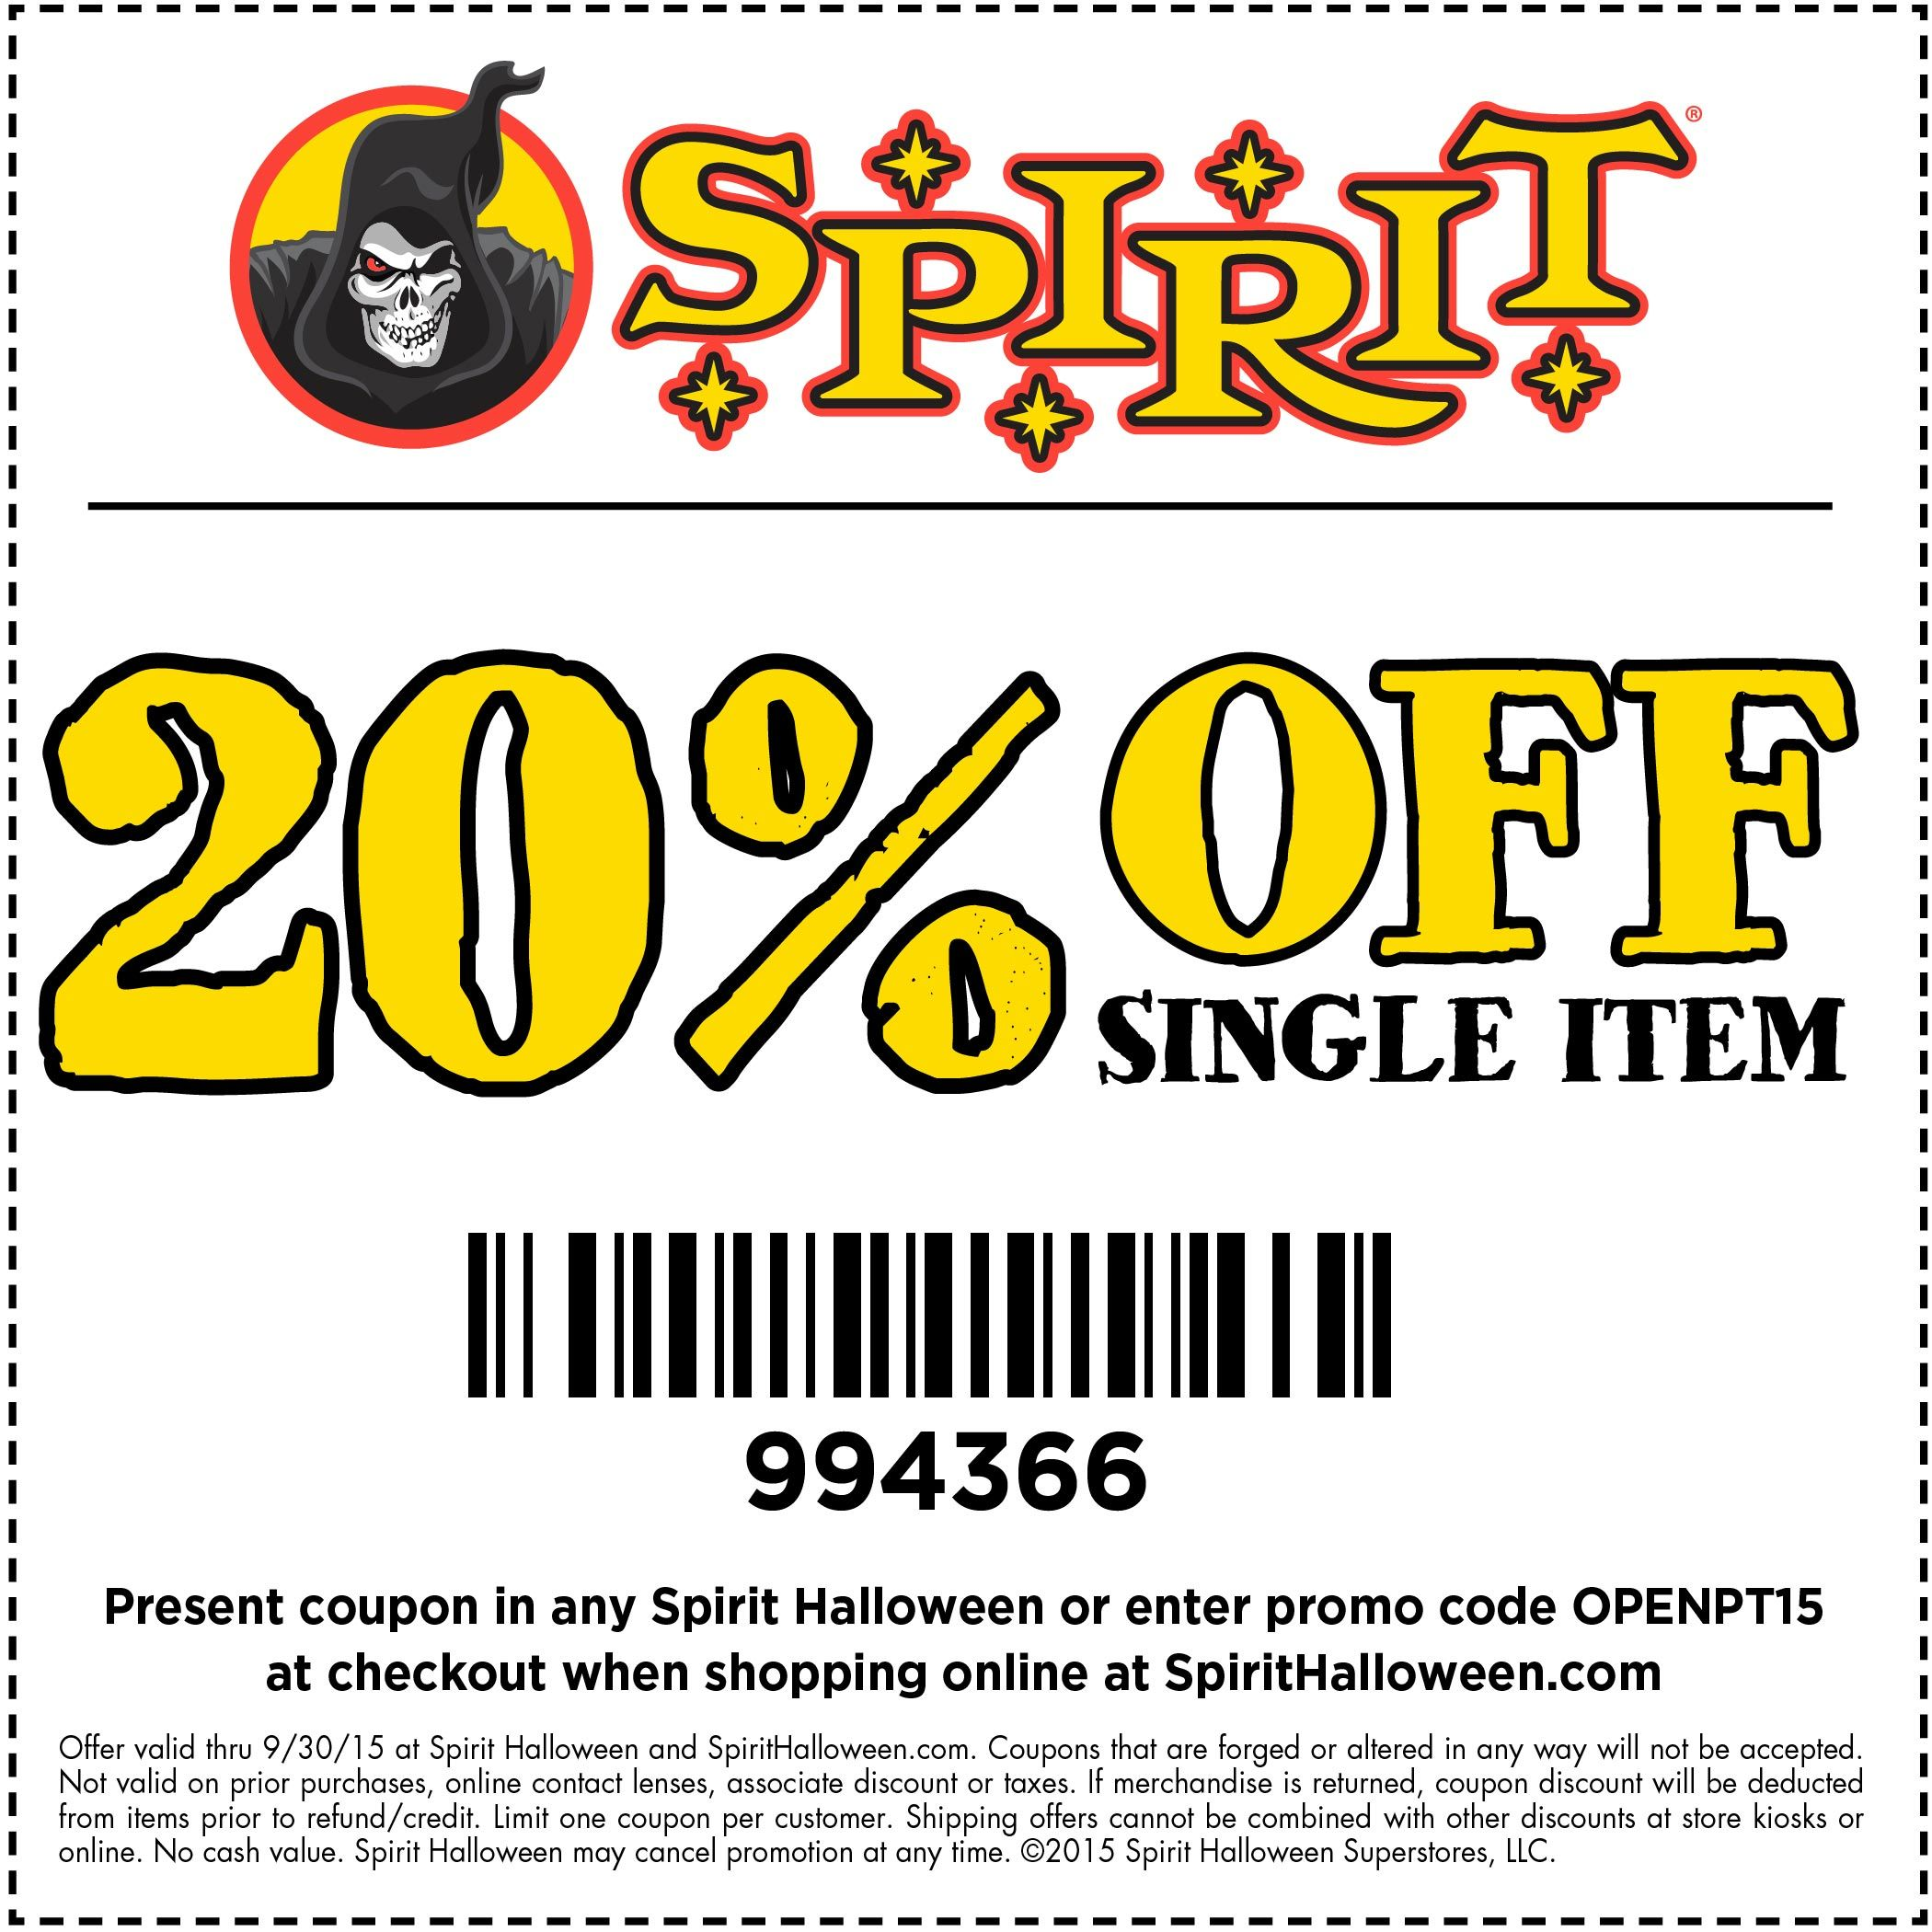 spirit halloween stores are now opening! go to your local store